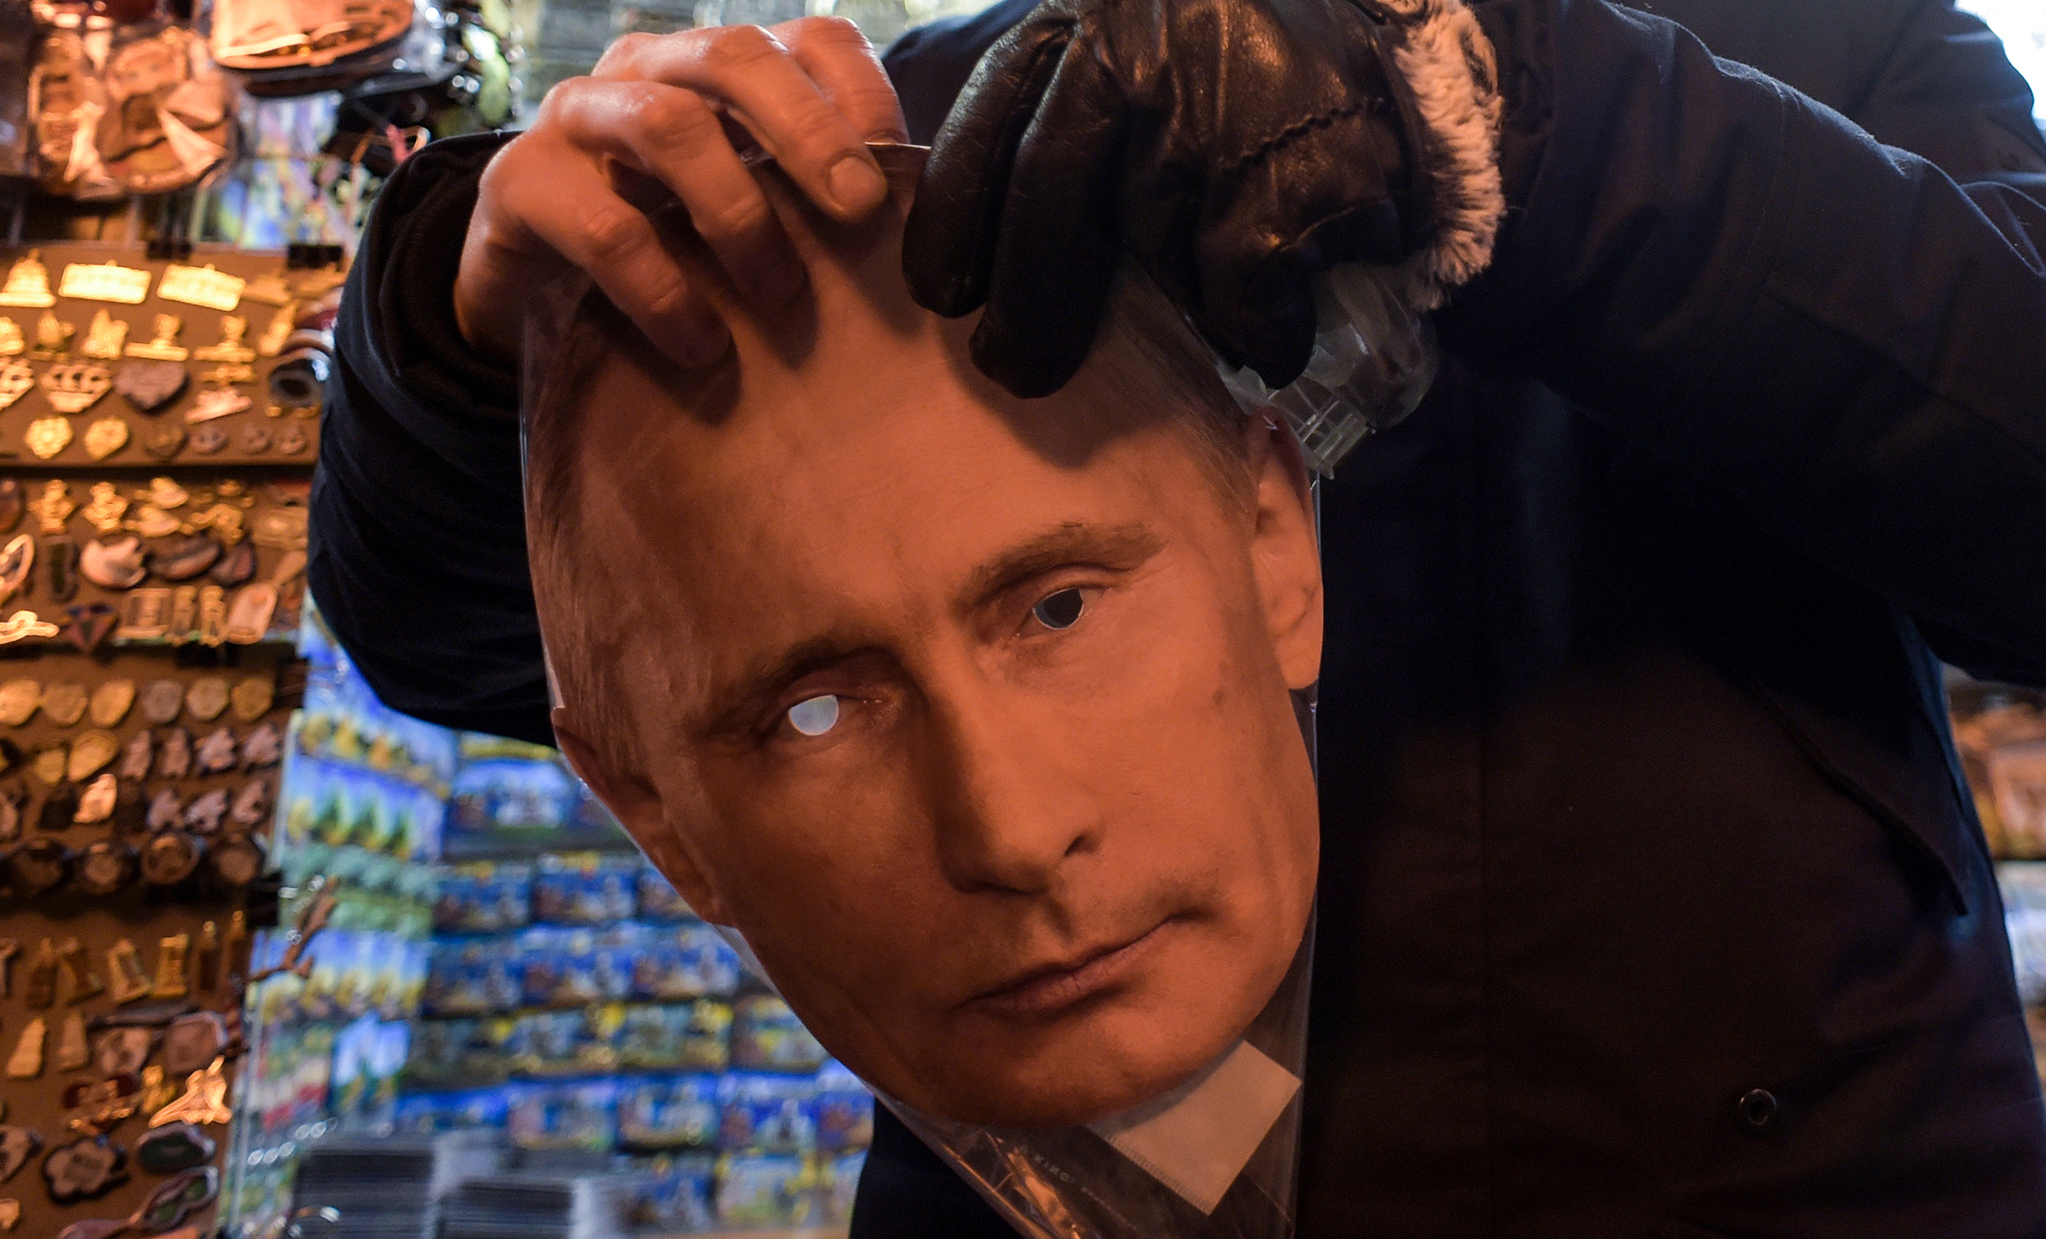 A mask of Russian President Vladimir Putin on sale at a souvenir stall in Saint Petersburg on Jan. 29, 2020.